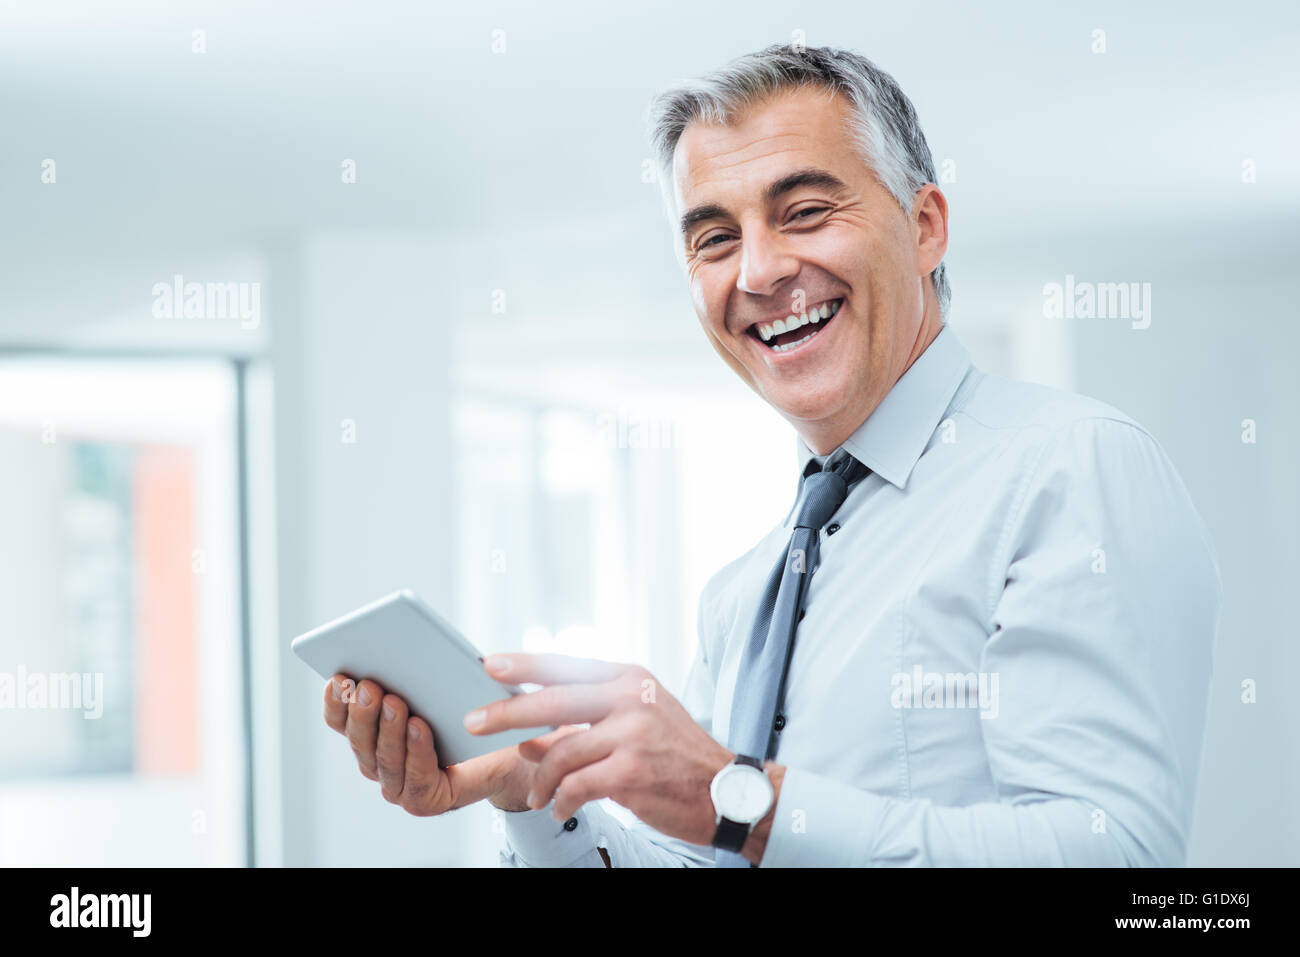 Smiling confident businessman looking at camera and using a digital touch screen tablet - Stock Image